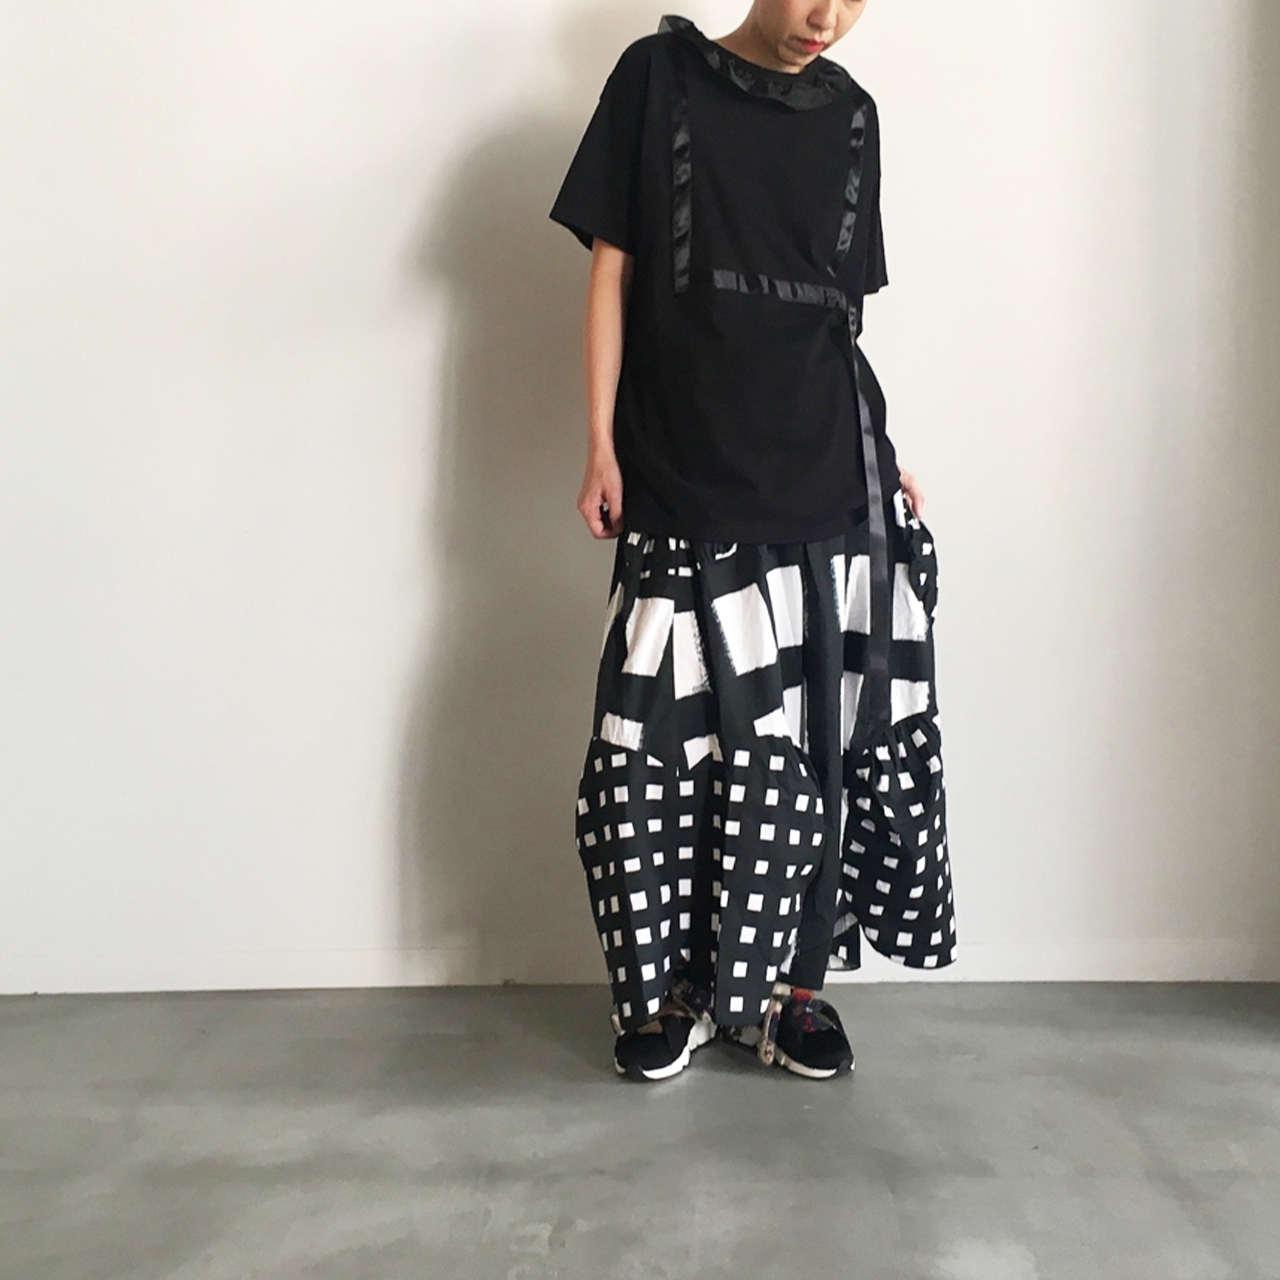 ORIG. CHECK MIX SKIRT / WOMEN